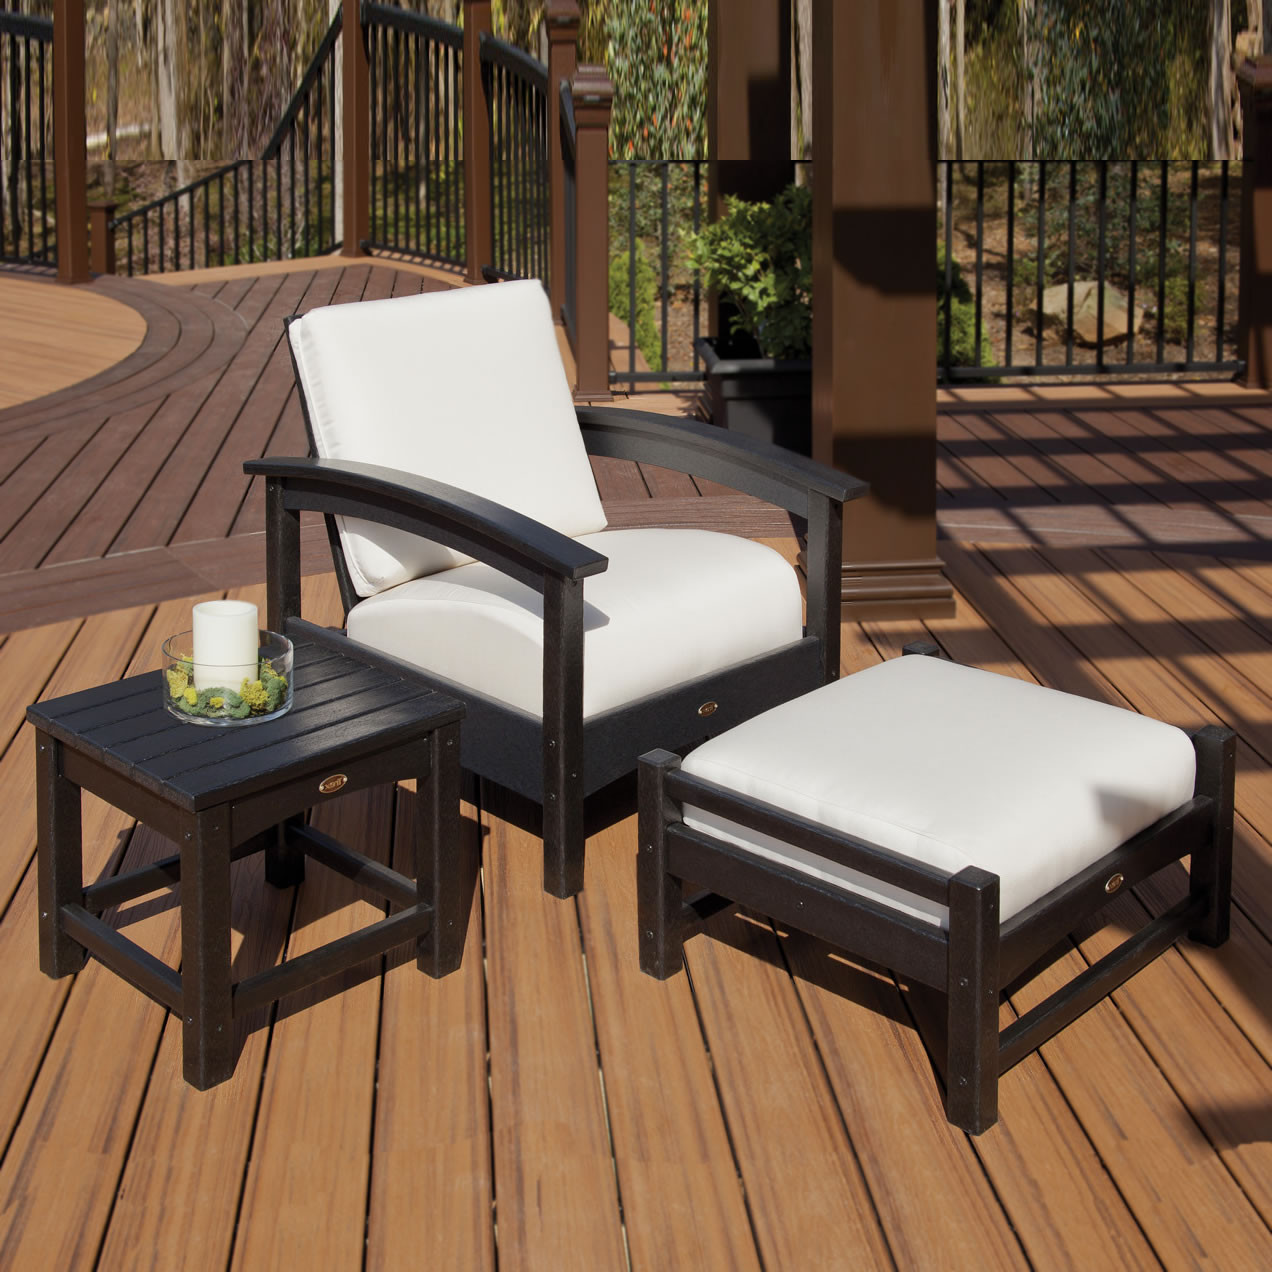 Outdoor Furniture Catalogs: Trex® Outdoor Furniture Rockport 18 In Club Side Table